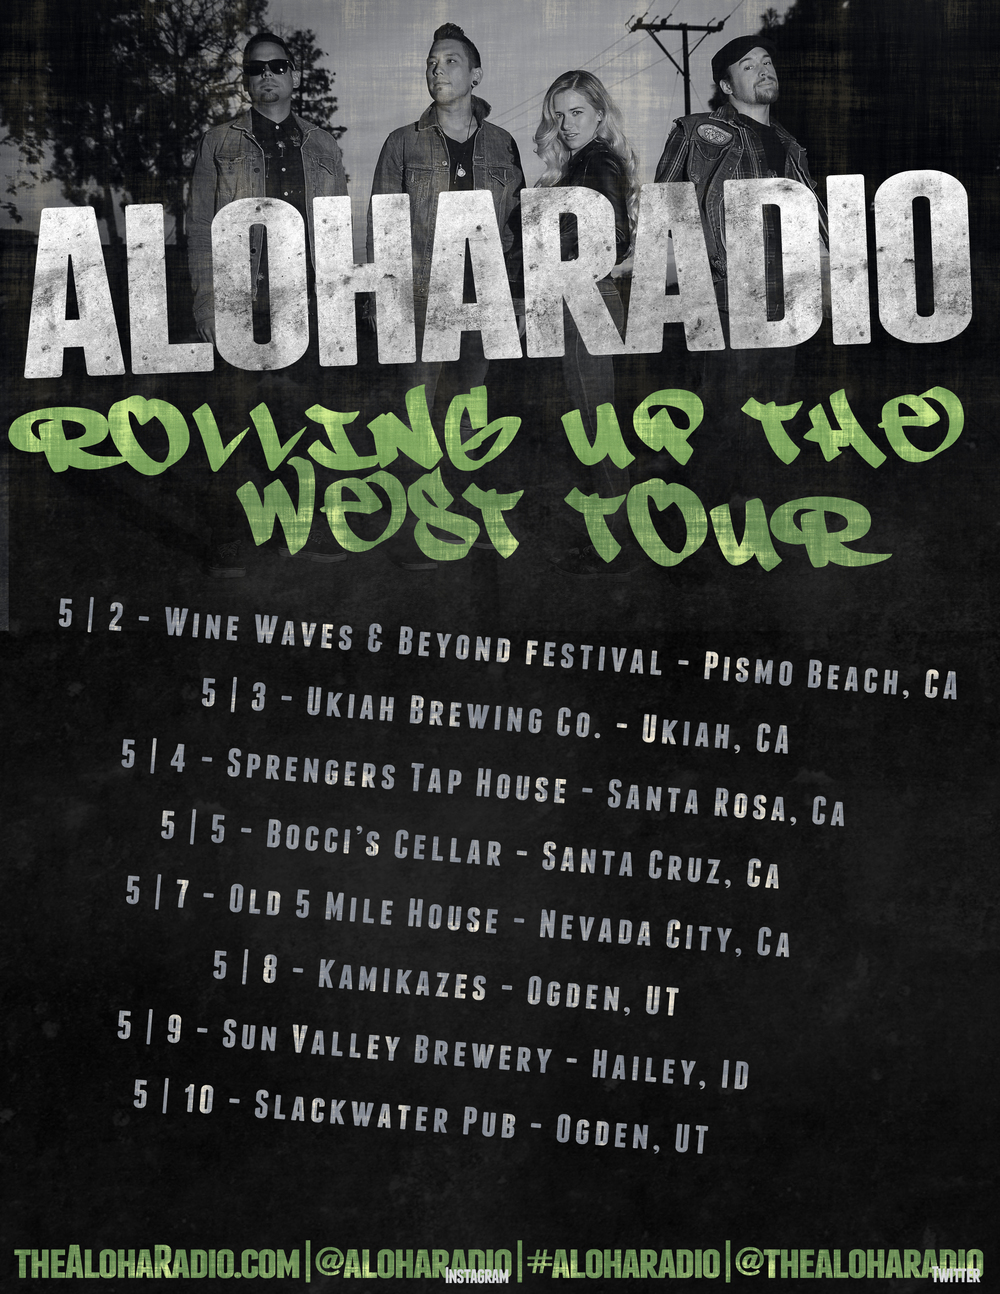 Aloha Radio - Rolling Up the West Tour May 2nd-10th